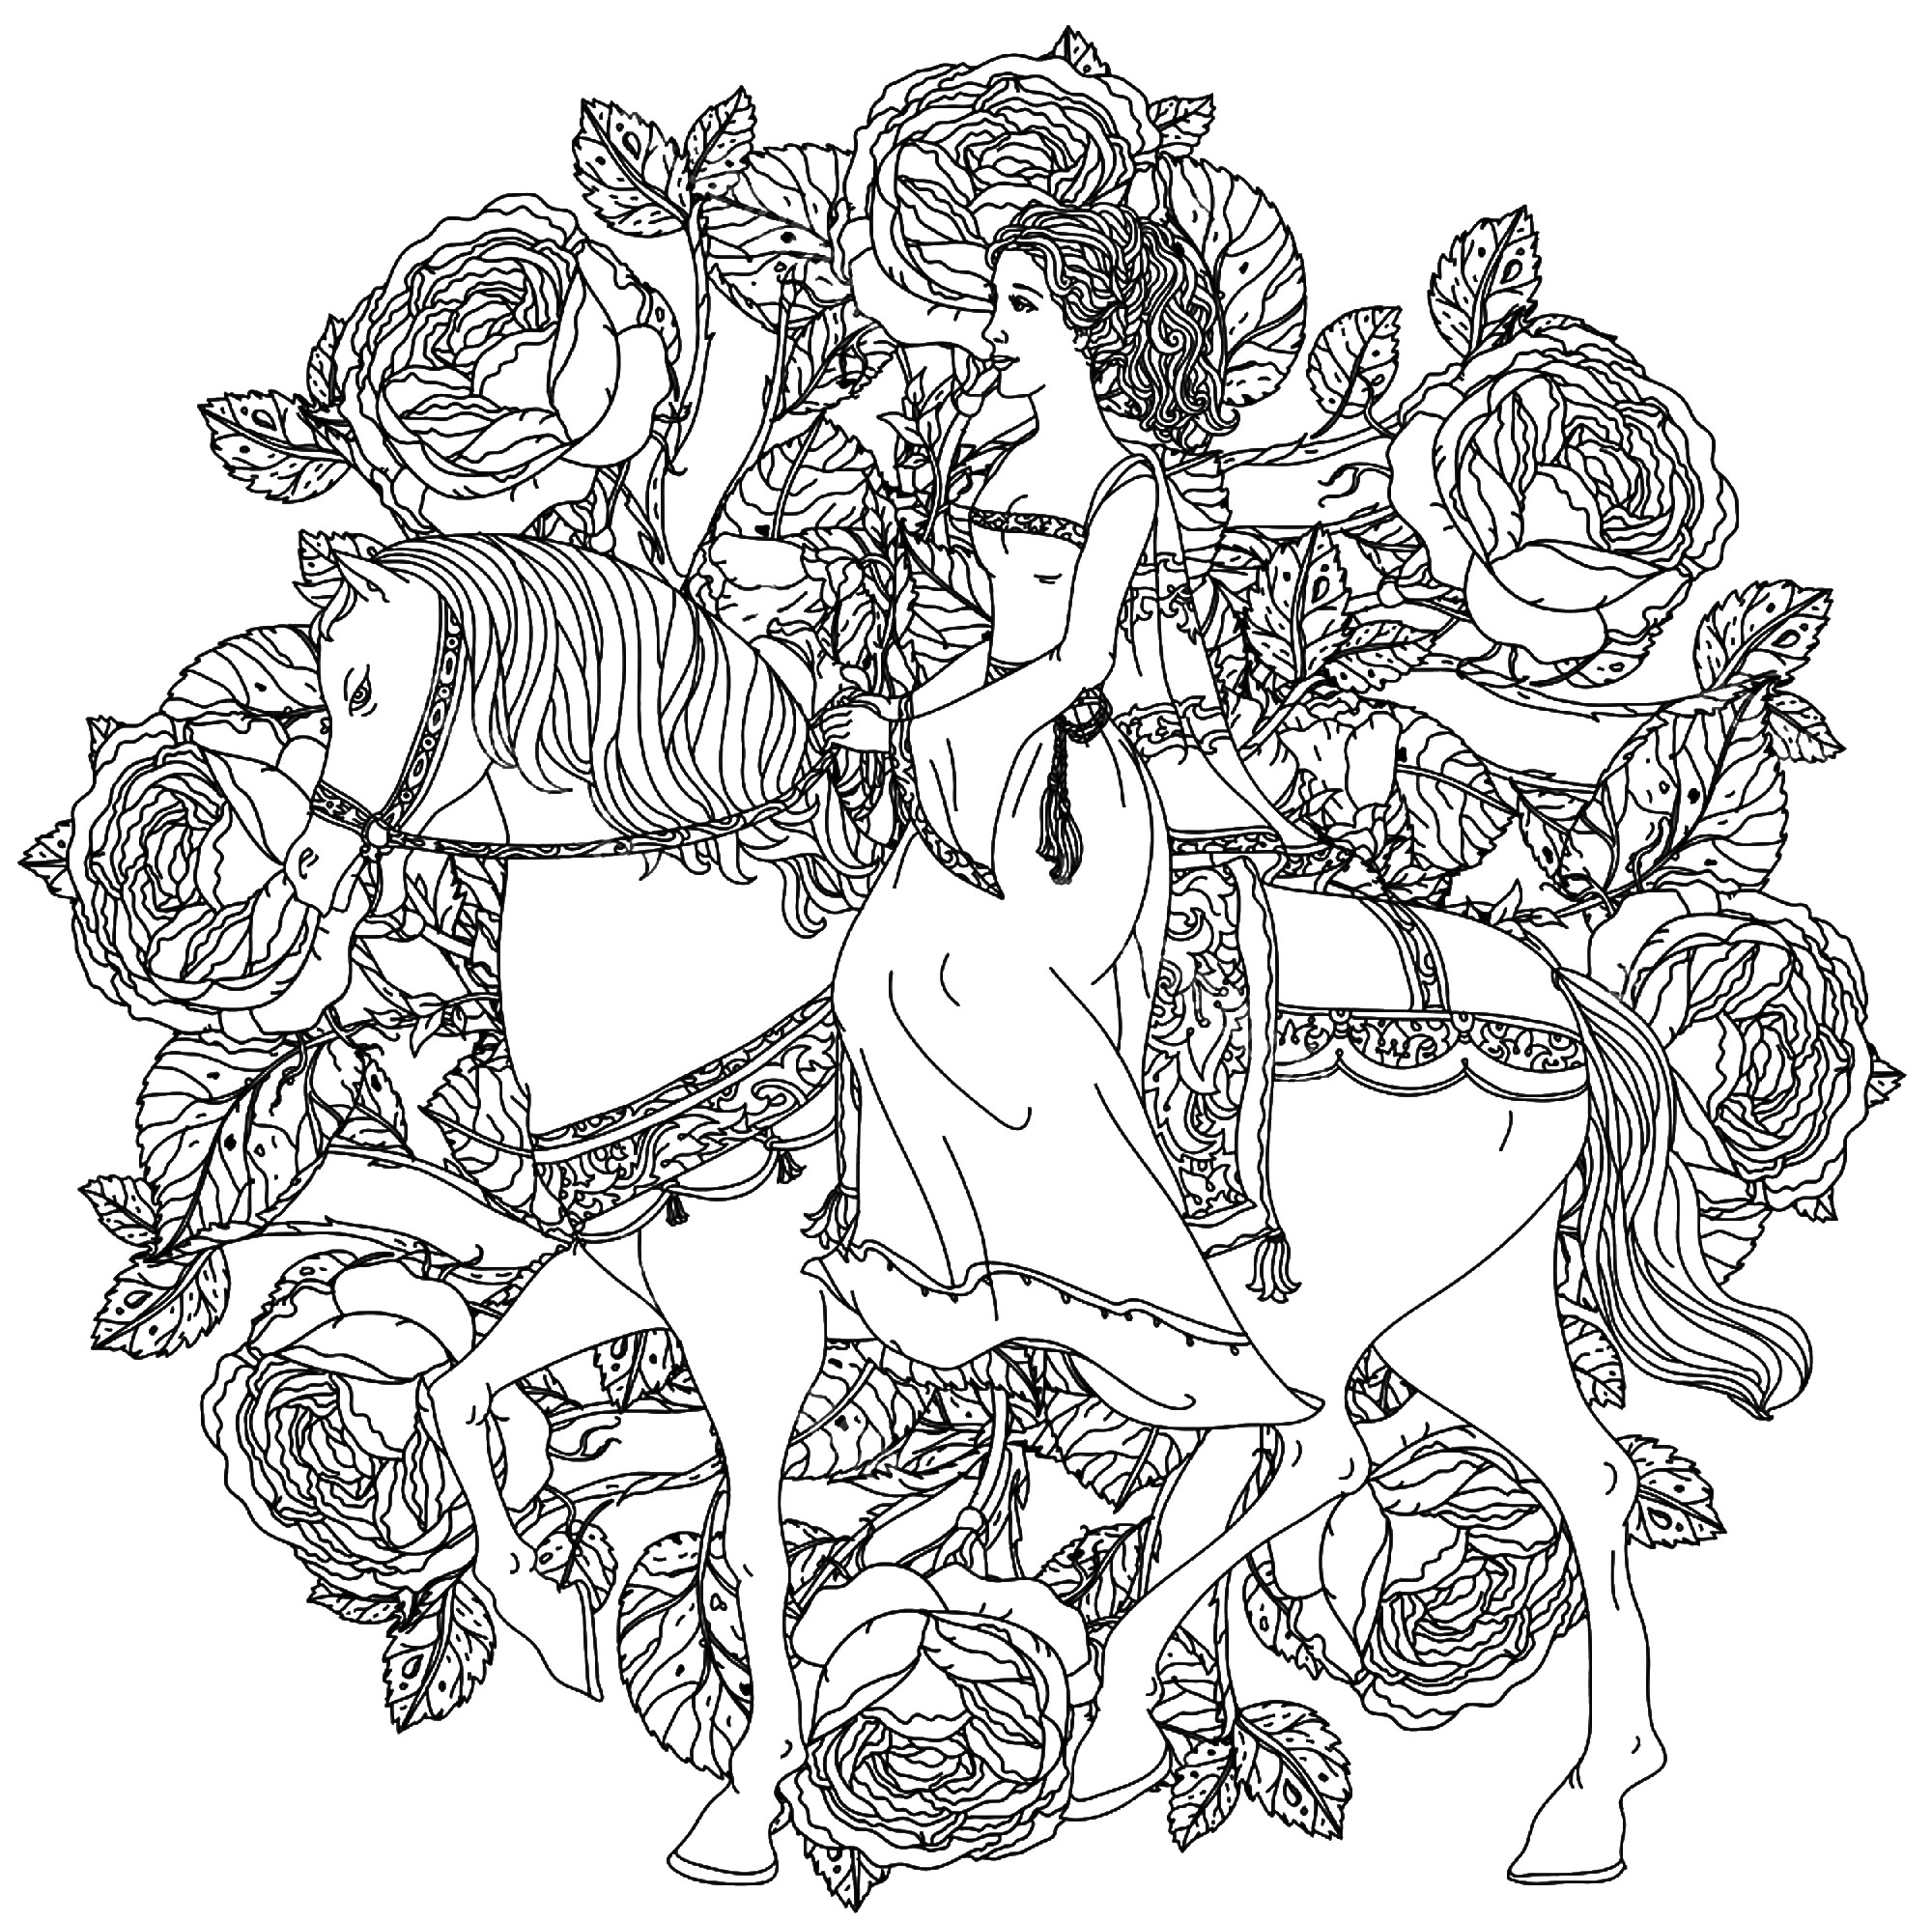 Colouring in pages mandala - Mandala Coloring Page Princess And Horse Free To Print